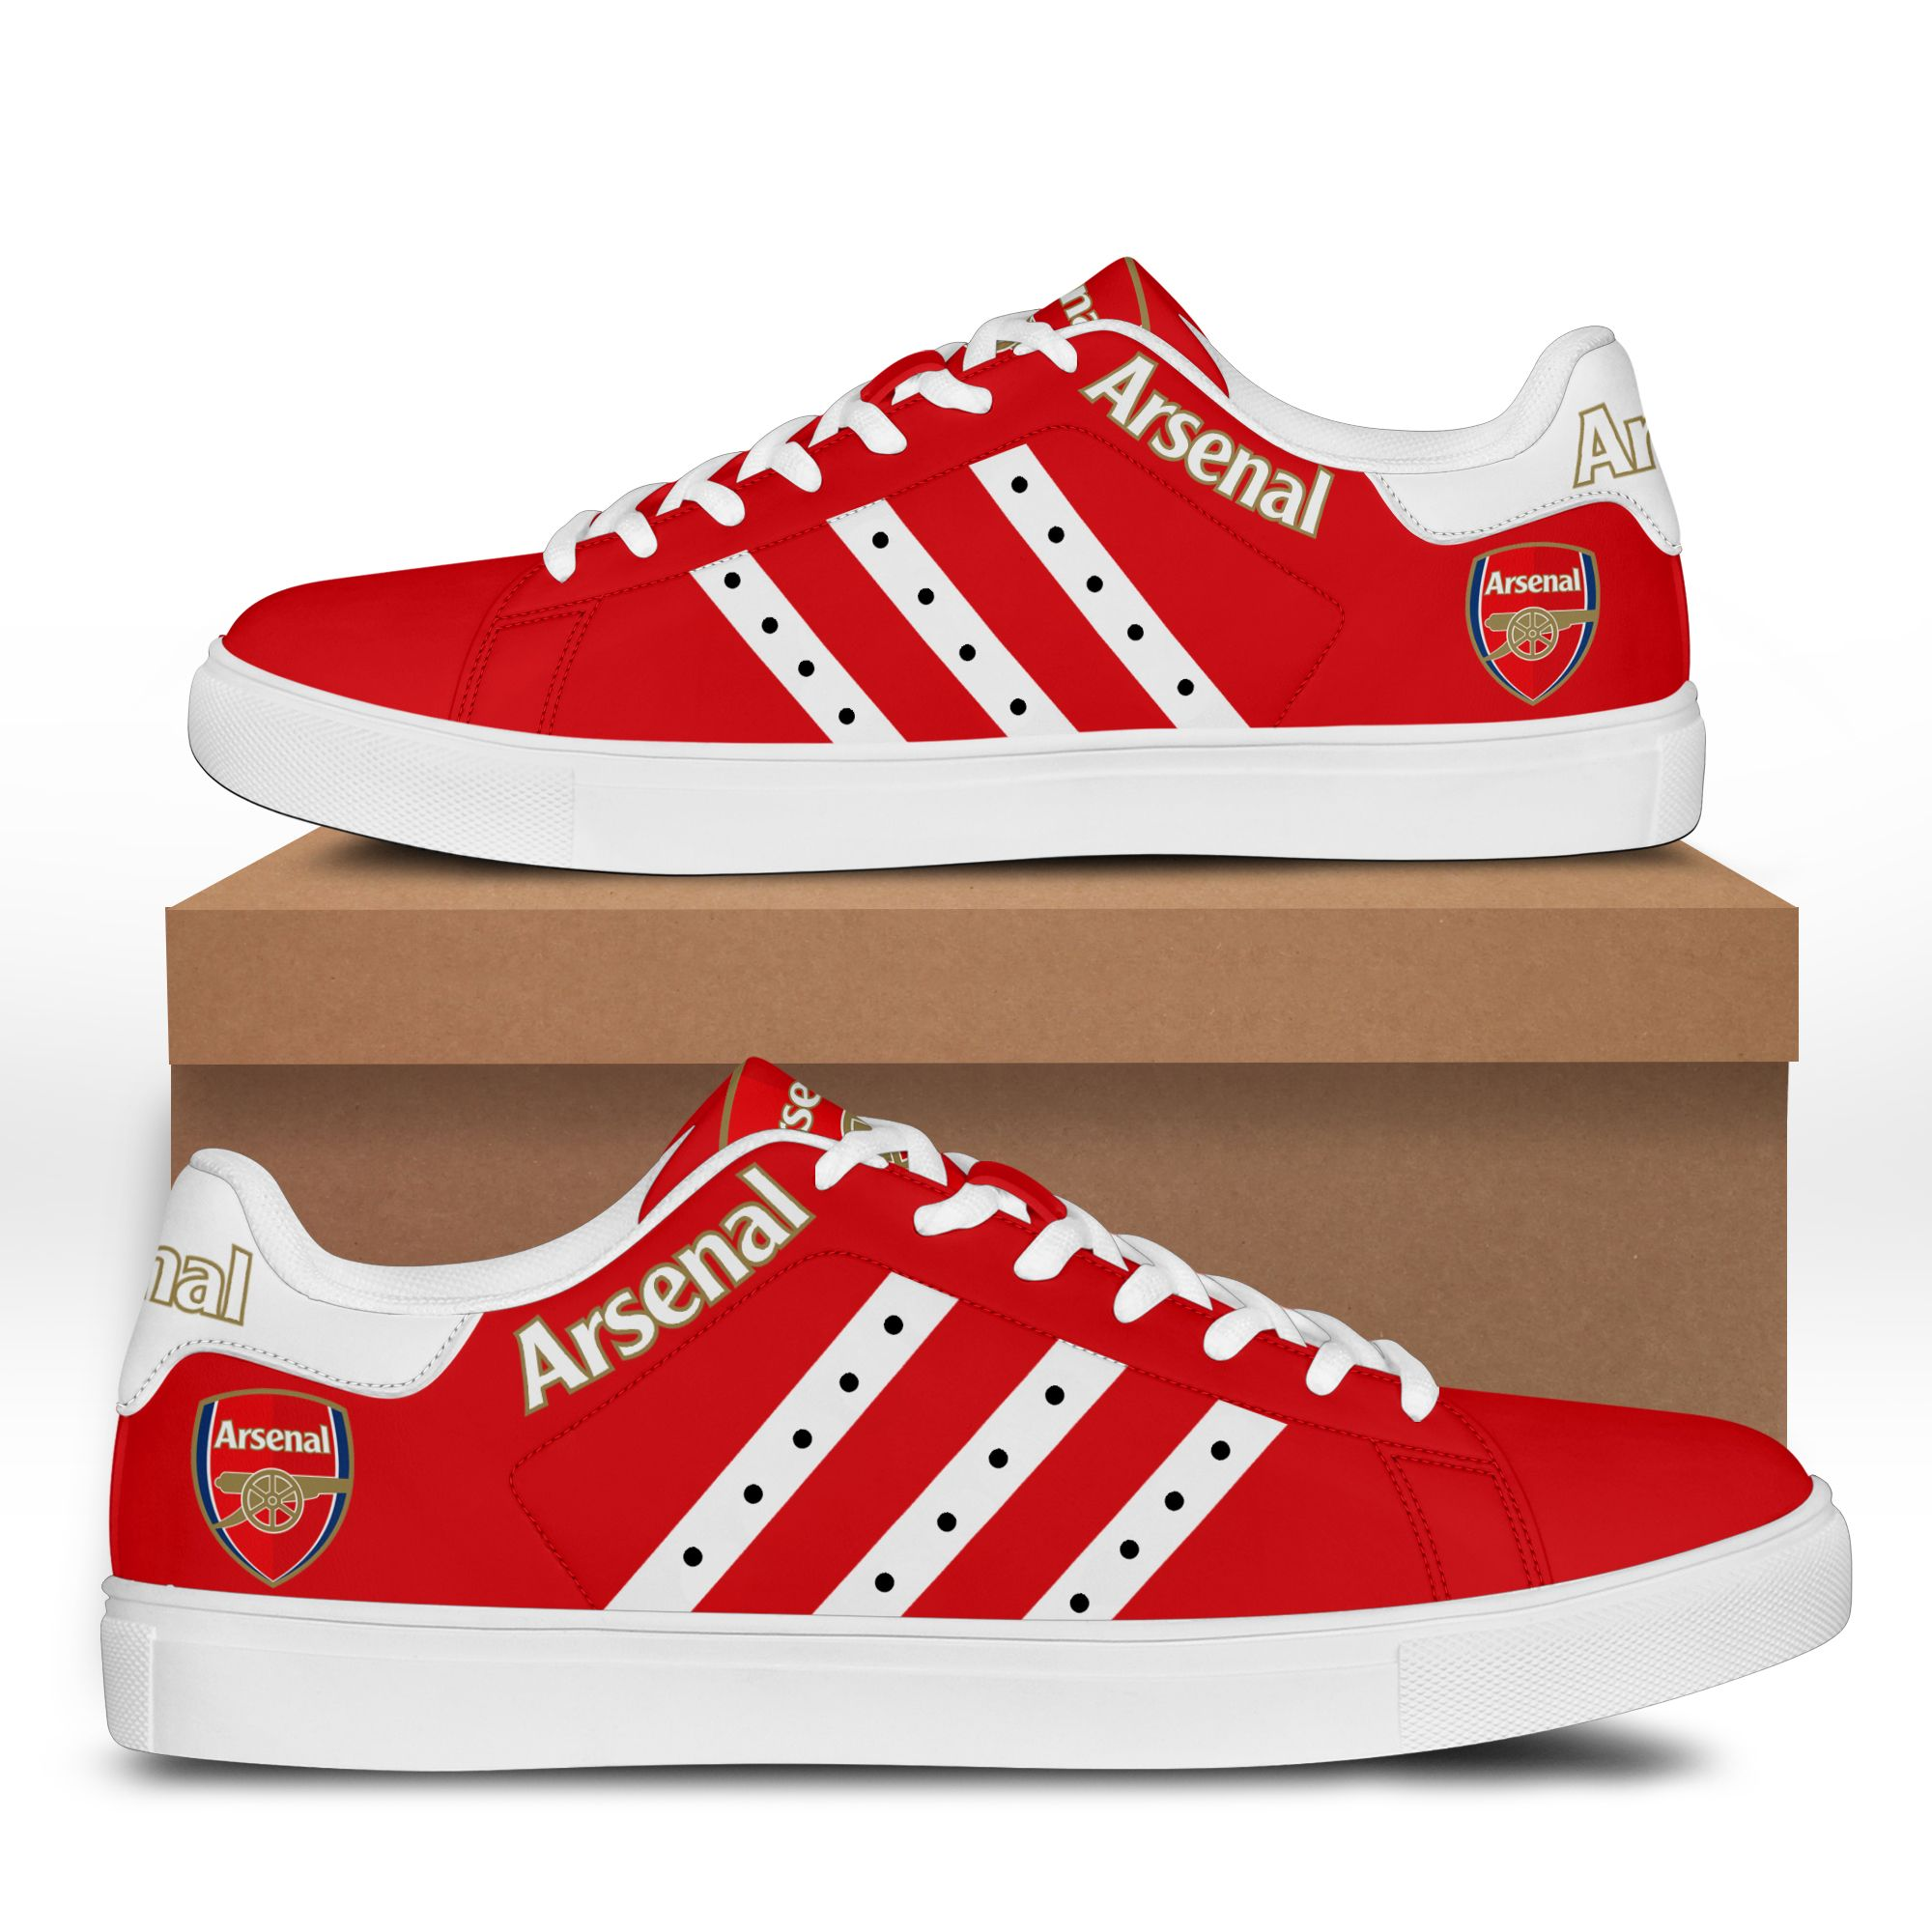 Arsenal stan smith low top shoes 3.3